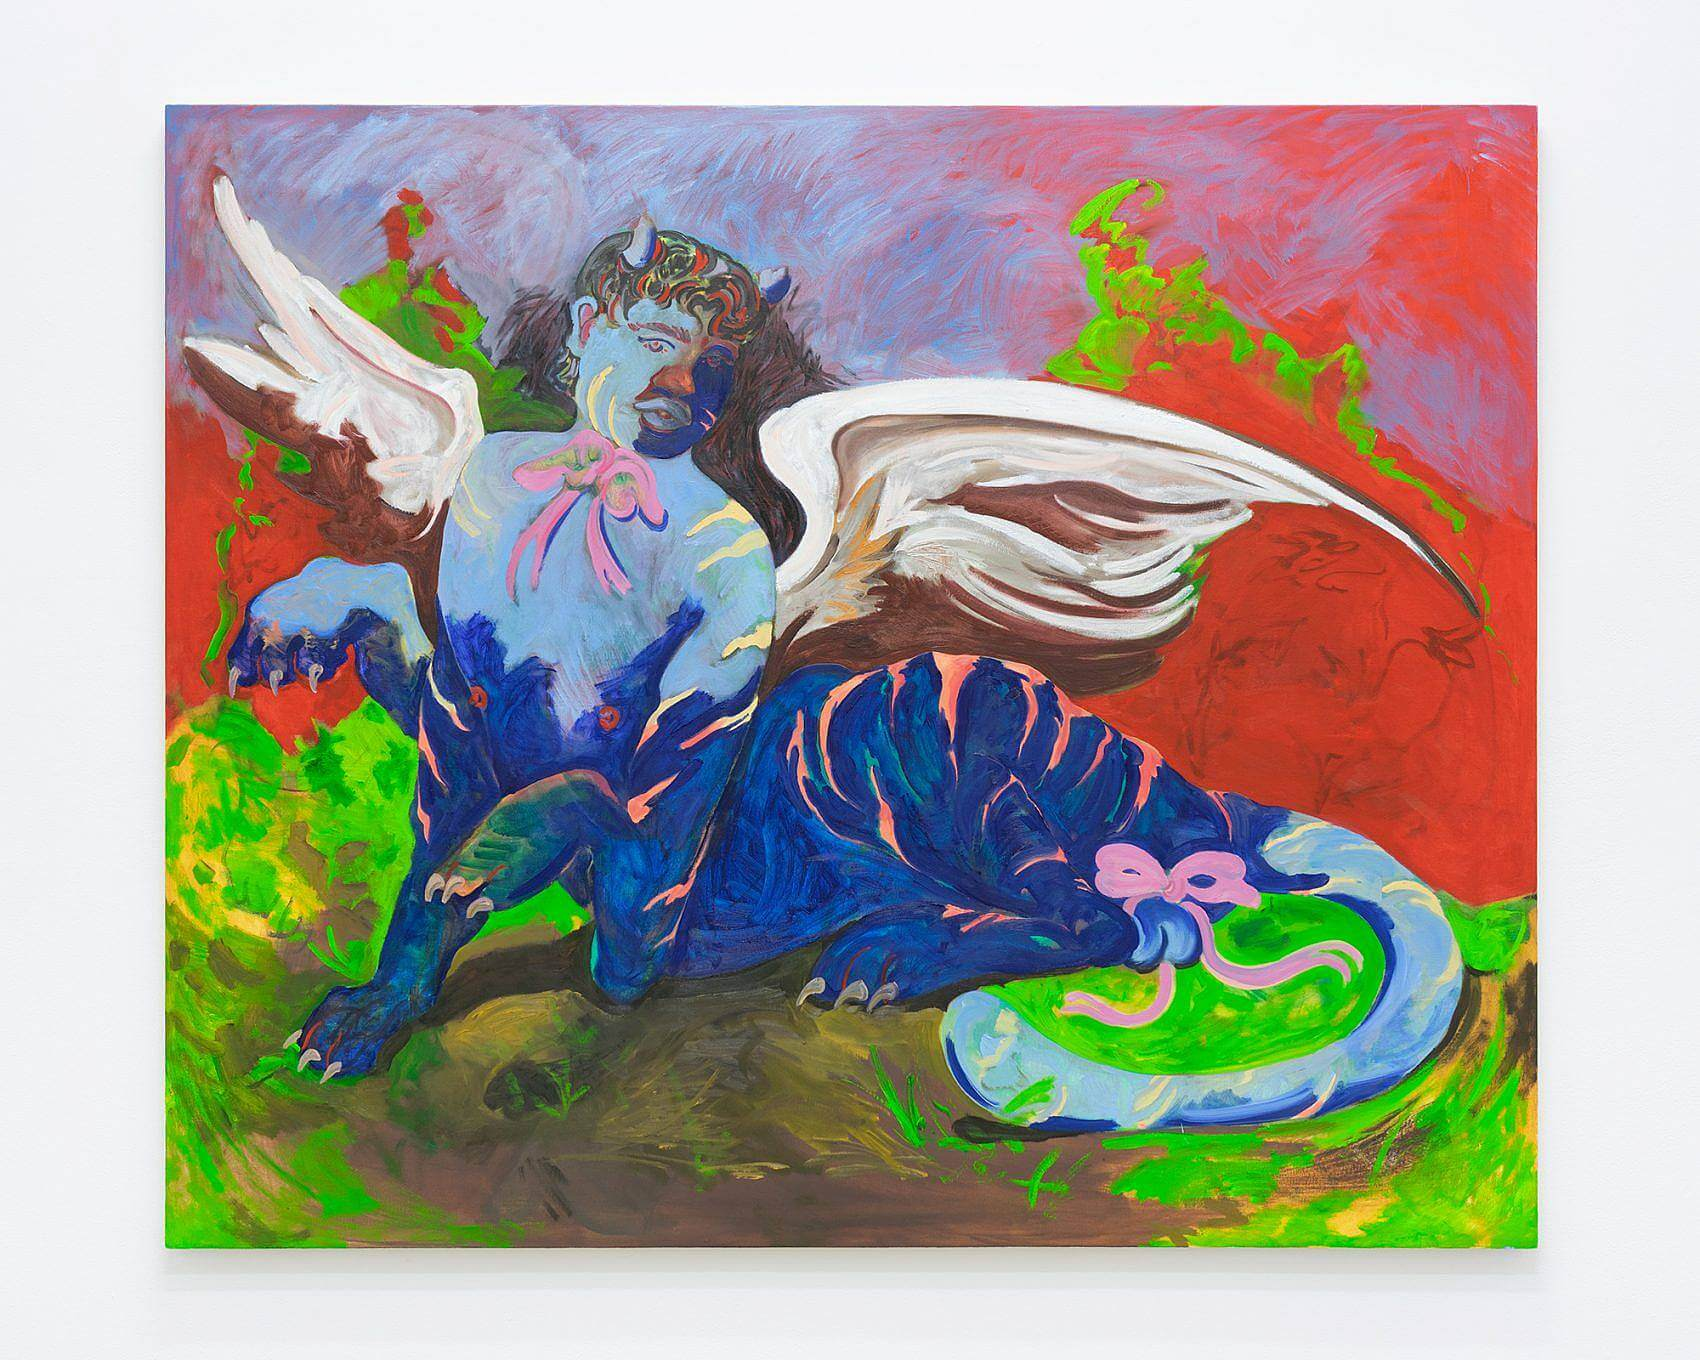 """Image Description: The work featured here is titled """"Final Fantasy"""" it measures 60 inches in height and 72 inches in width. The painting features a winged figure with a human upper body and the lower body of a tiger. The figure is blue and pink and is reclining on a red and green landscape."""